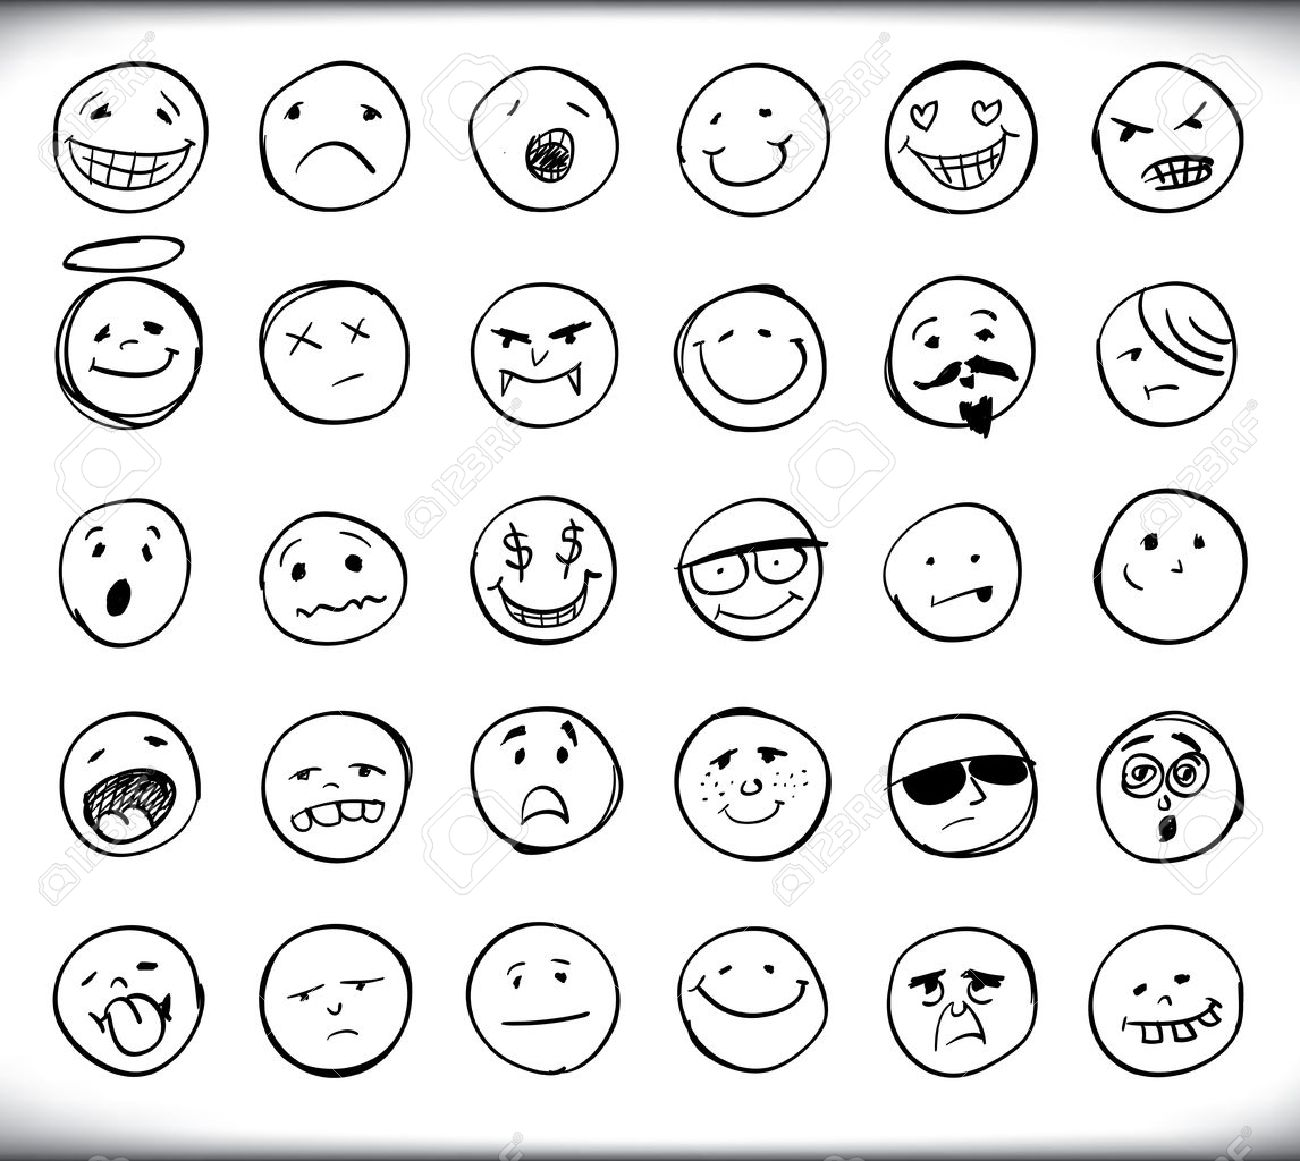 Set of thirty hand drawn emoticons or smileys each with a set of thirty hand drawn emoticons or smileys each with a different facial expression and emotion biocorpaavc Images